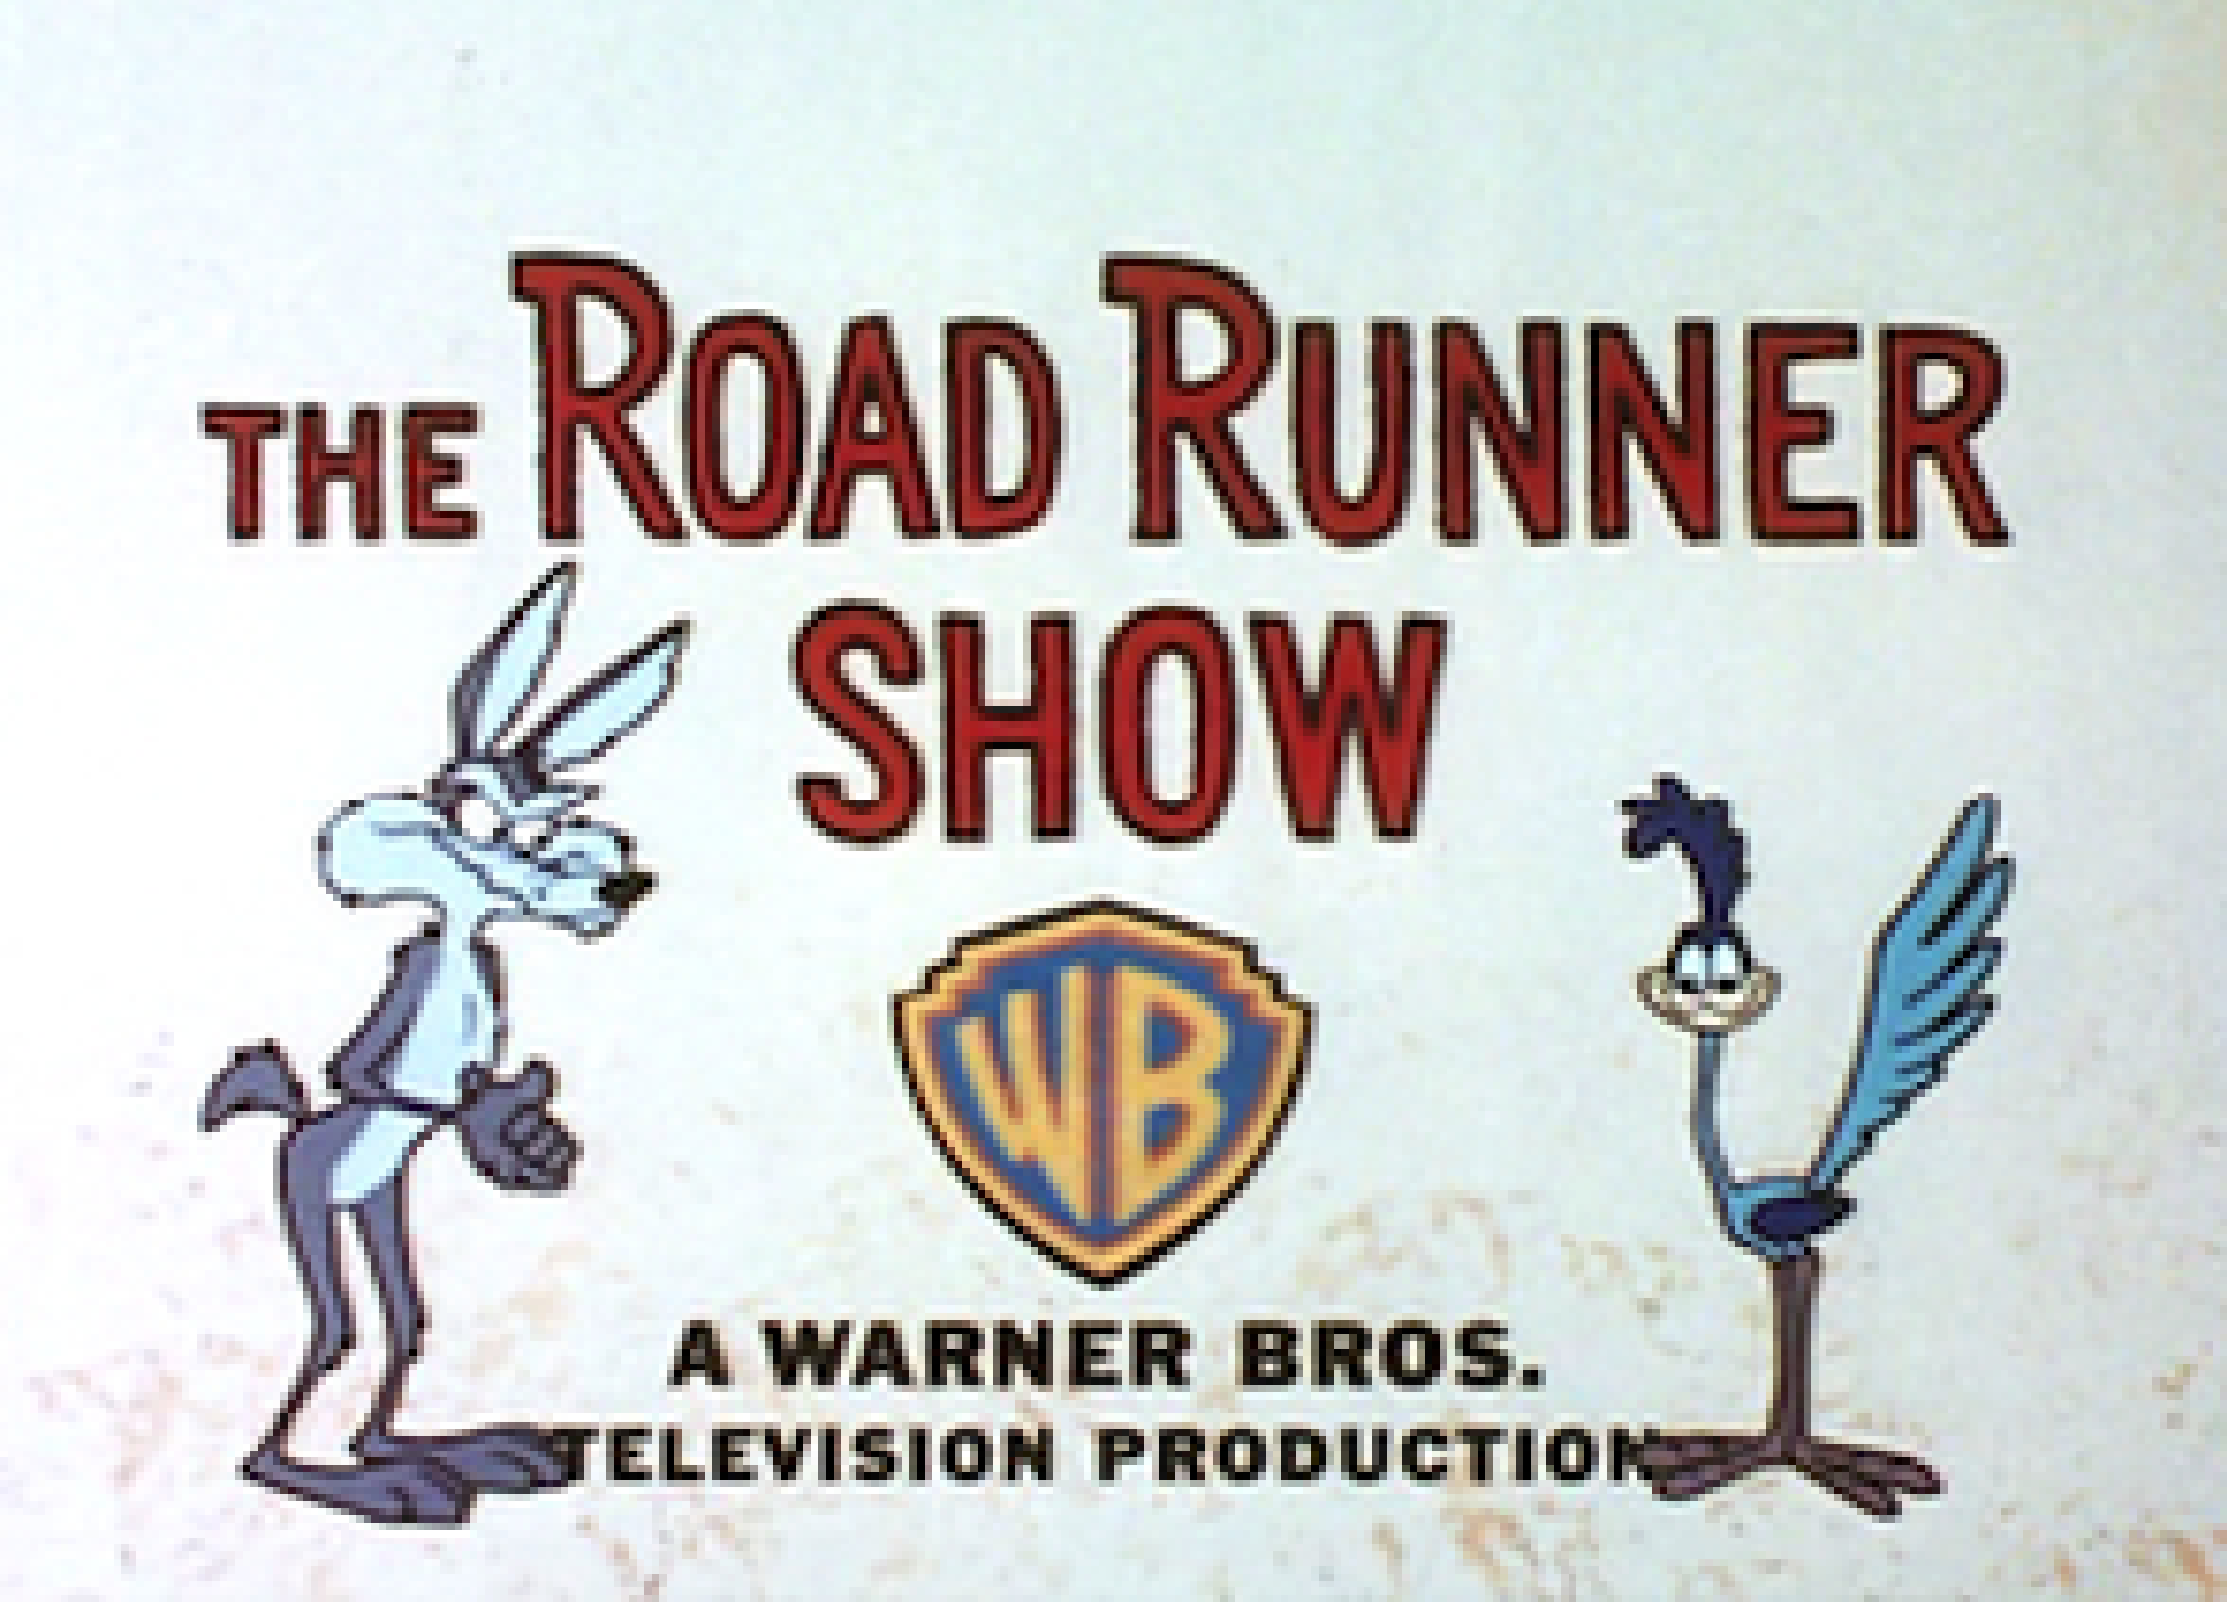 The Road Runner Show